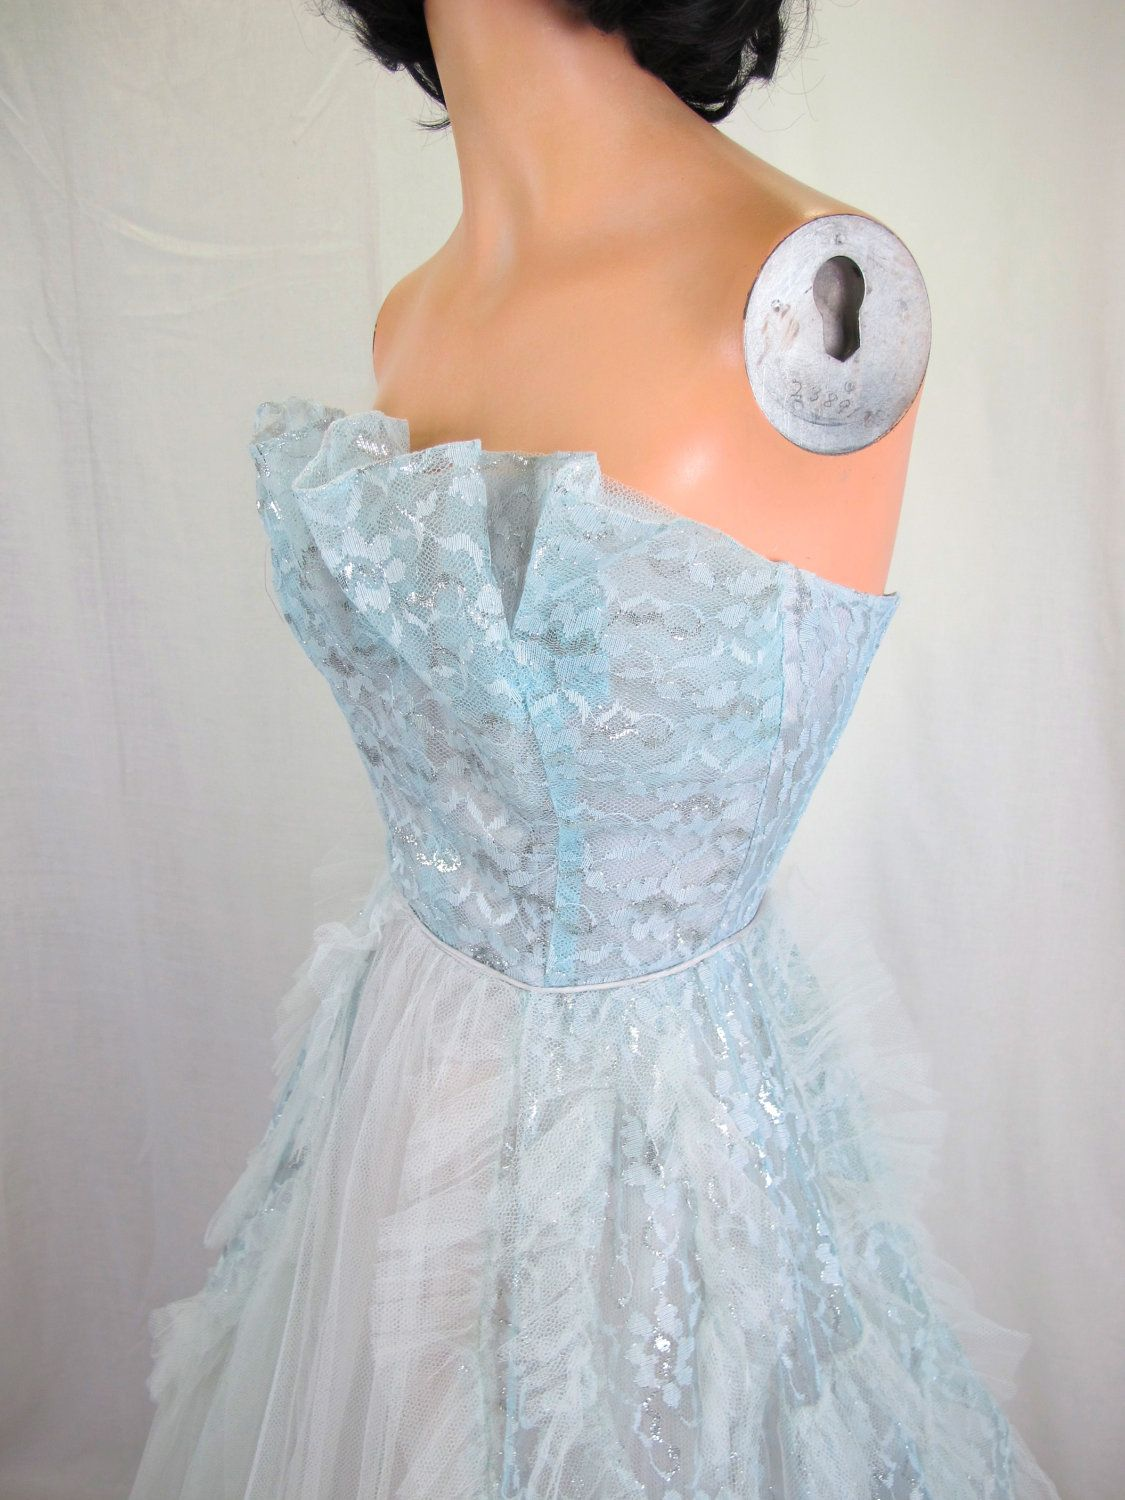 S pale blue strapless tulle party dress prom dress crumb catcher